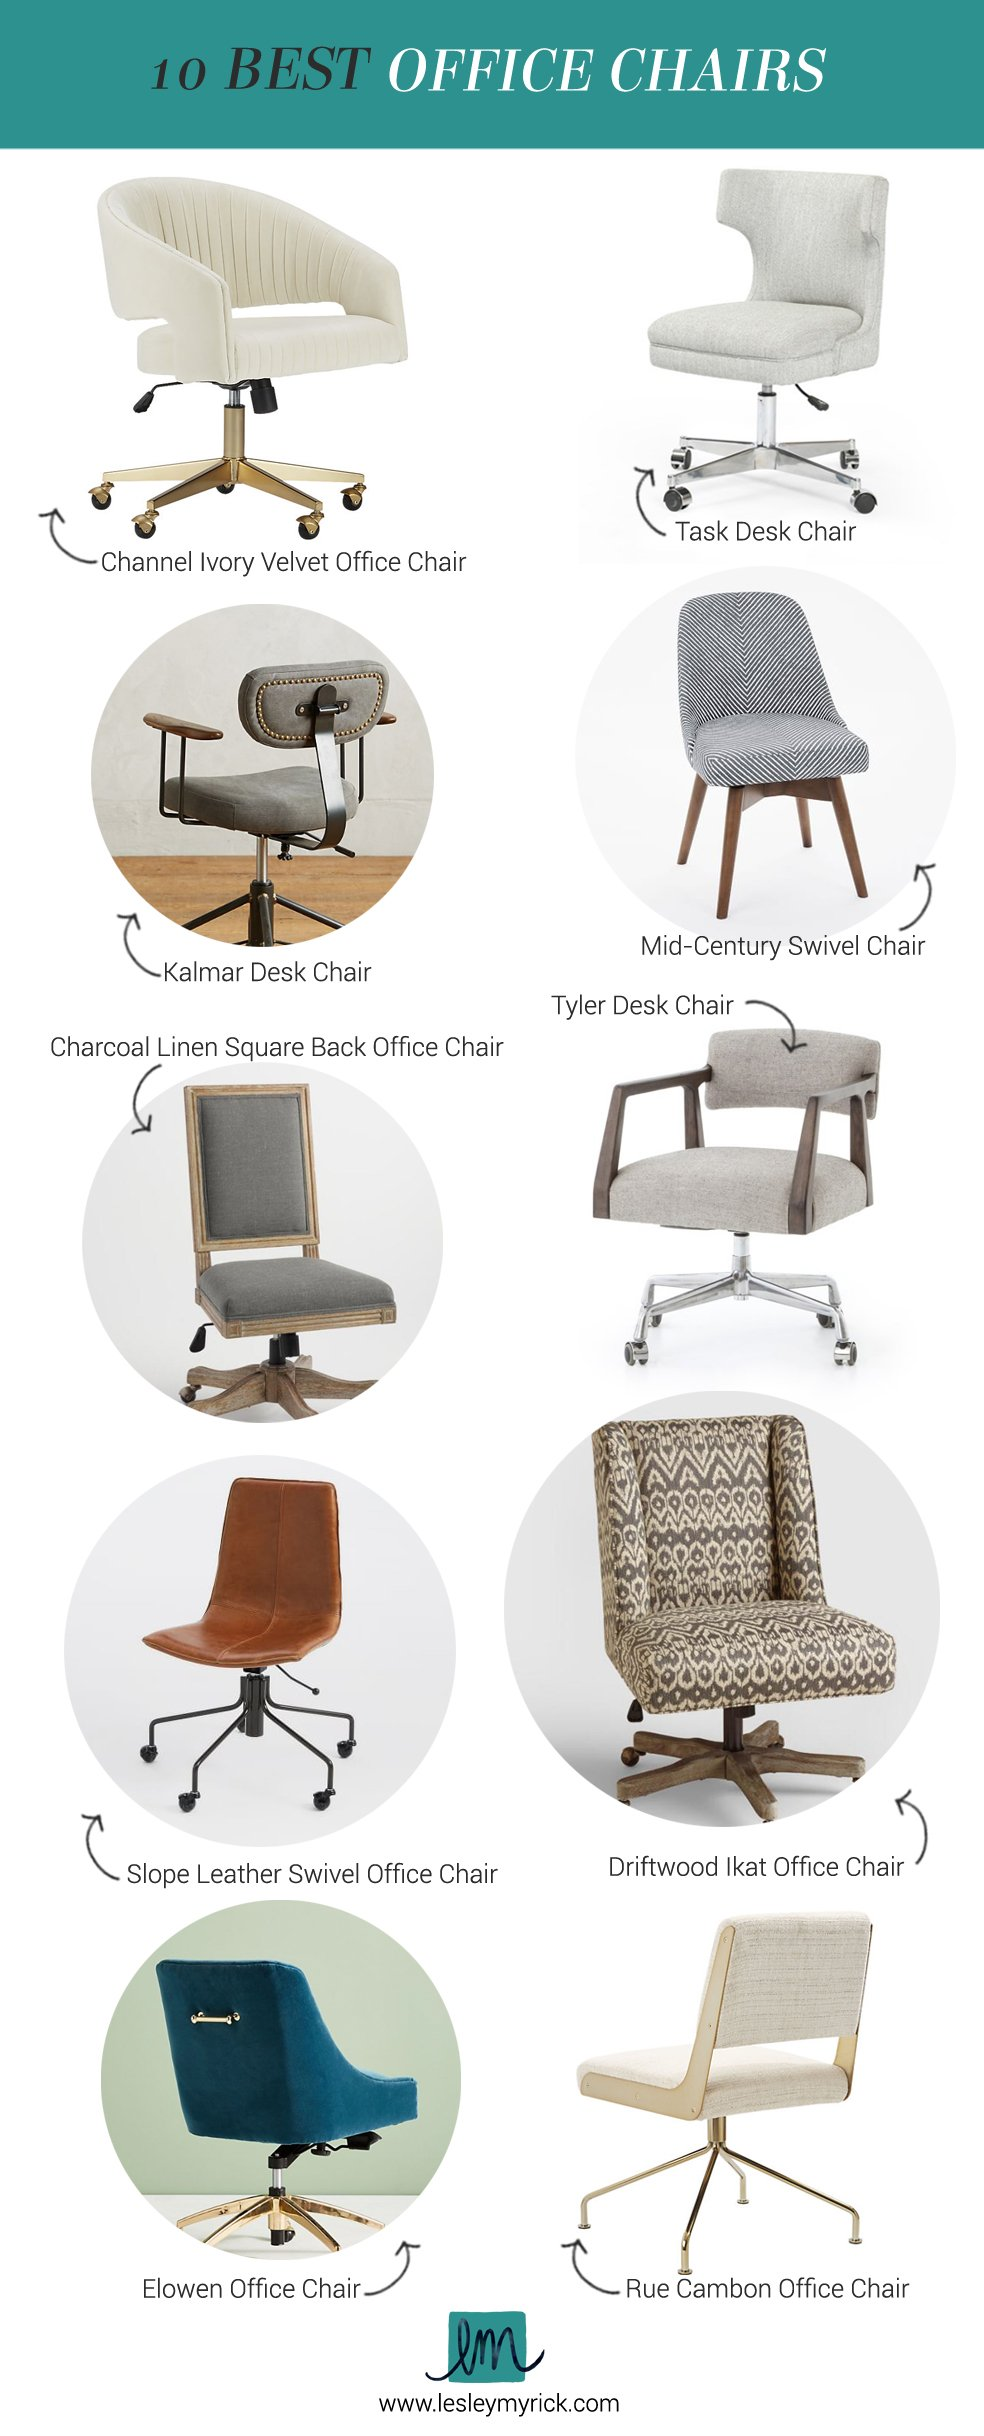 10 best office chairs | Home office inspiration from interior designer Lesley Myrick